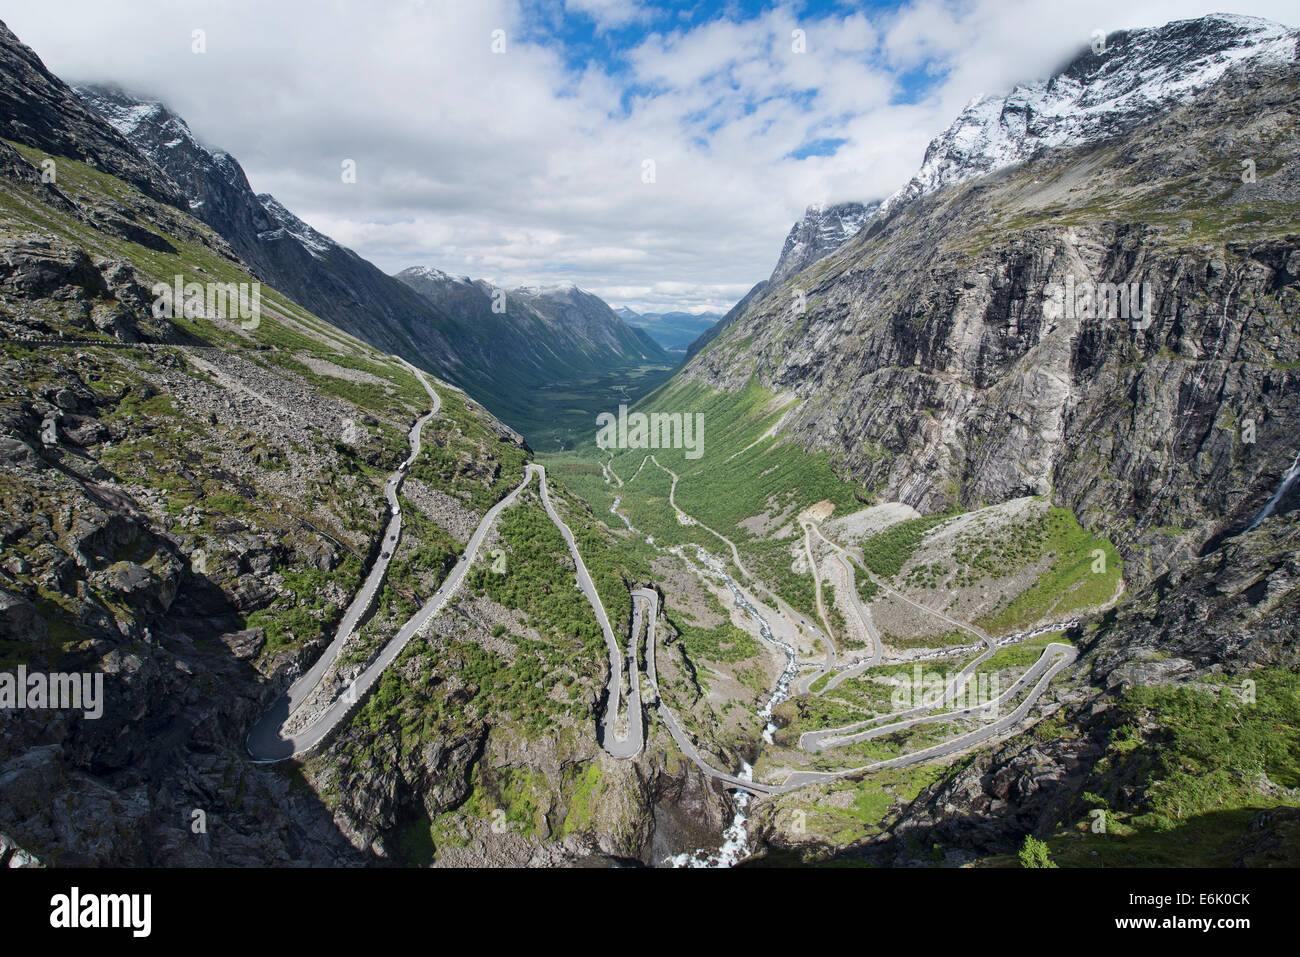 The winding Trollstigen National Tourist Route over the mountains in Norway - Stock Image